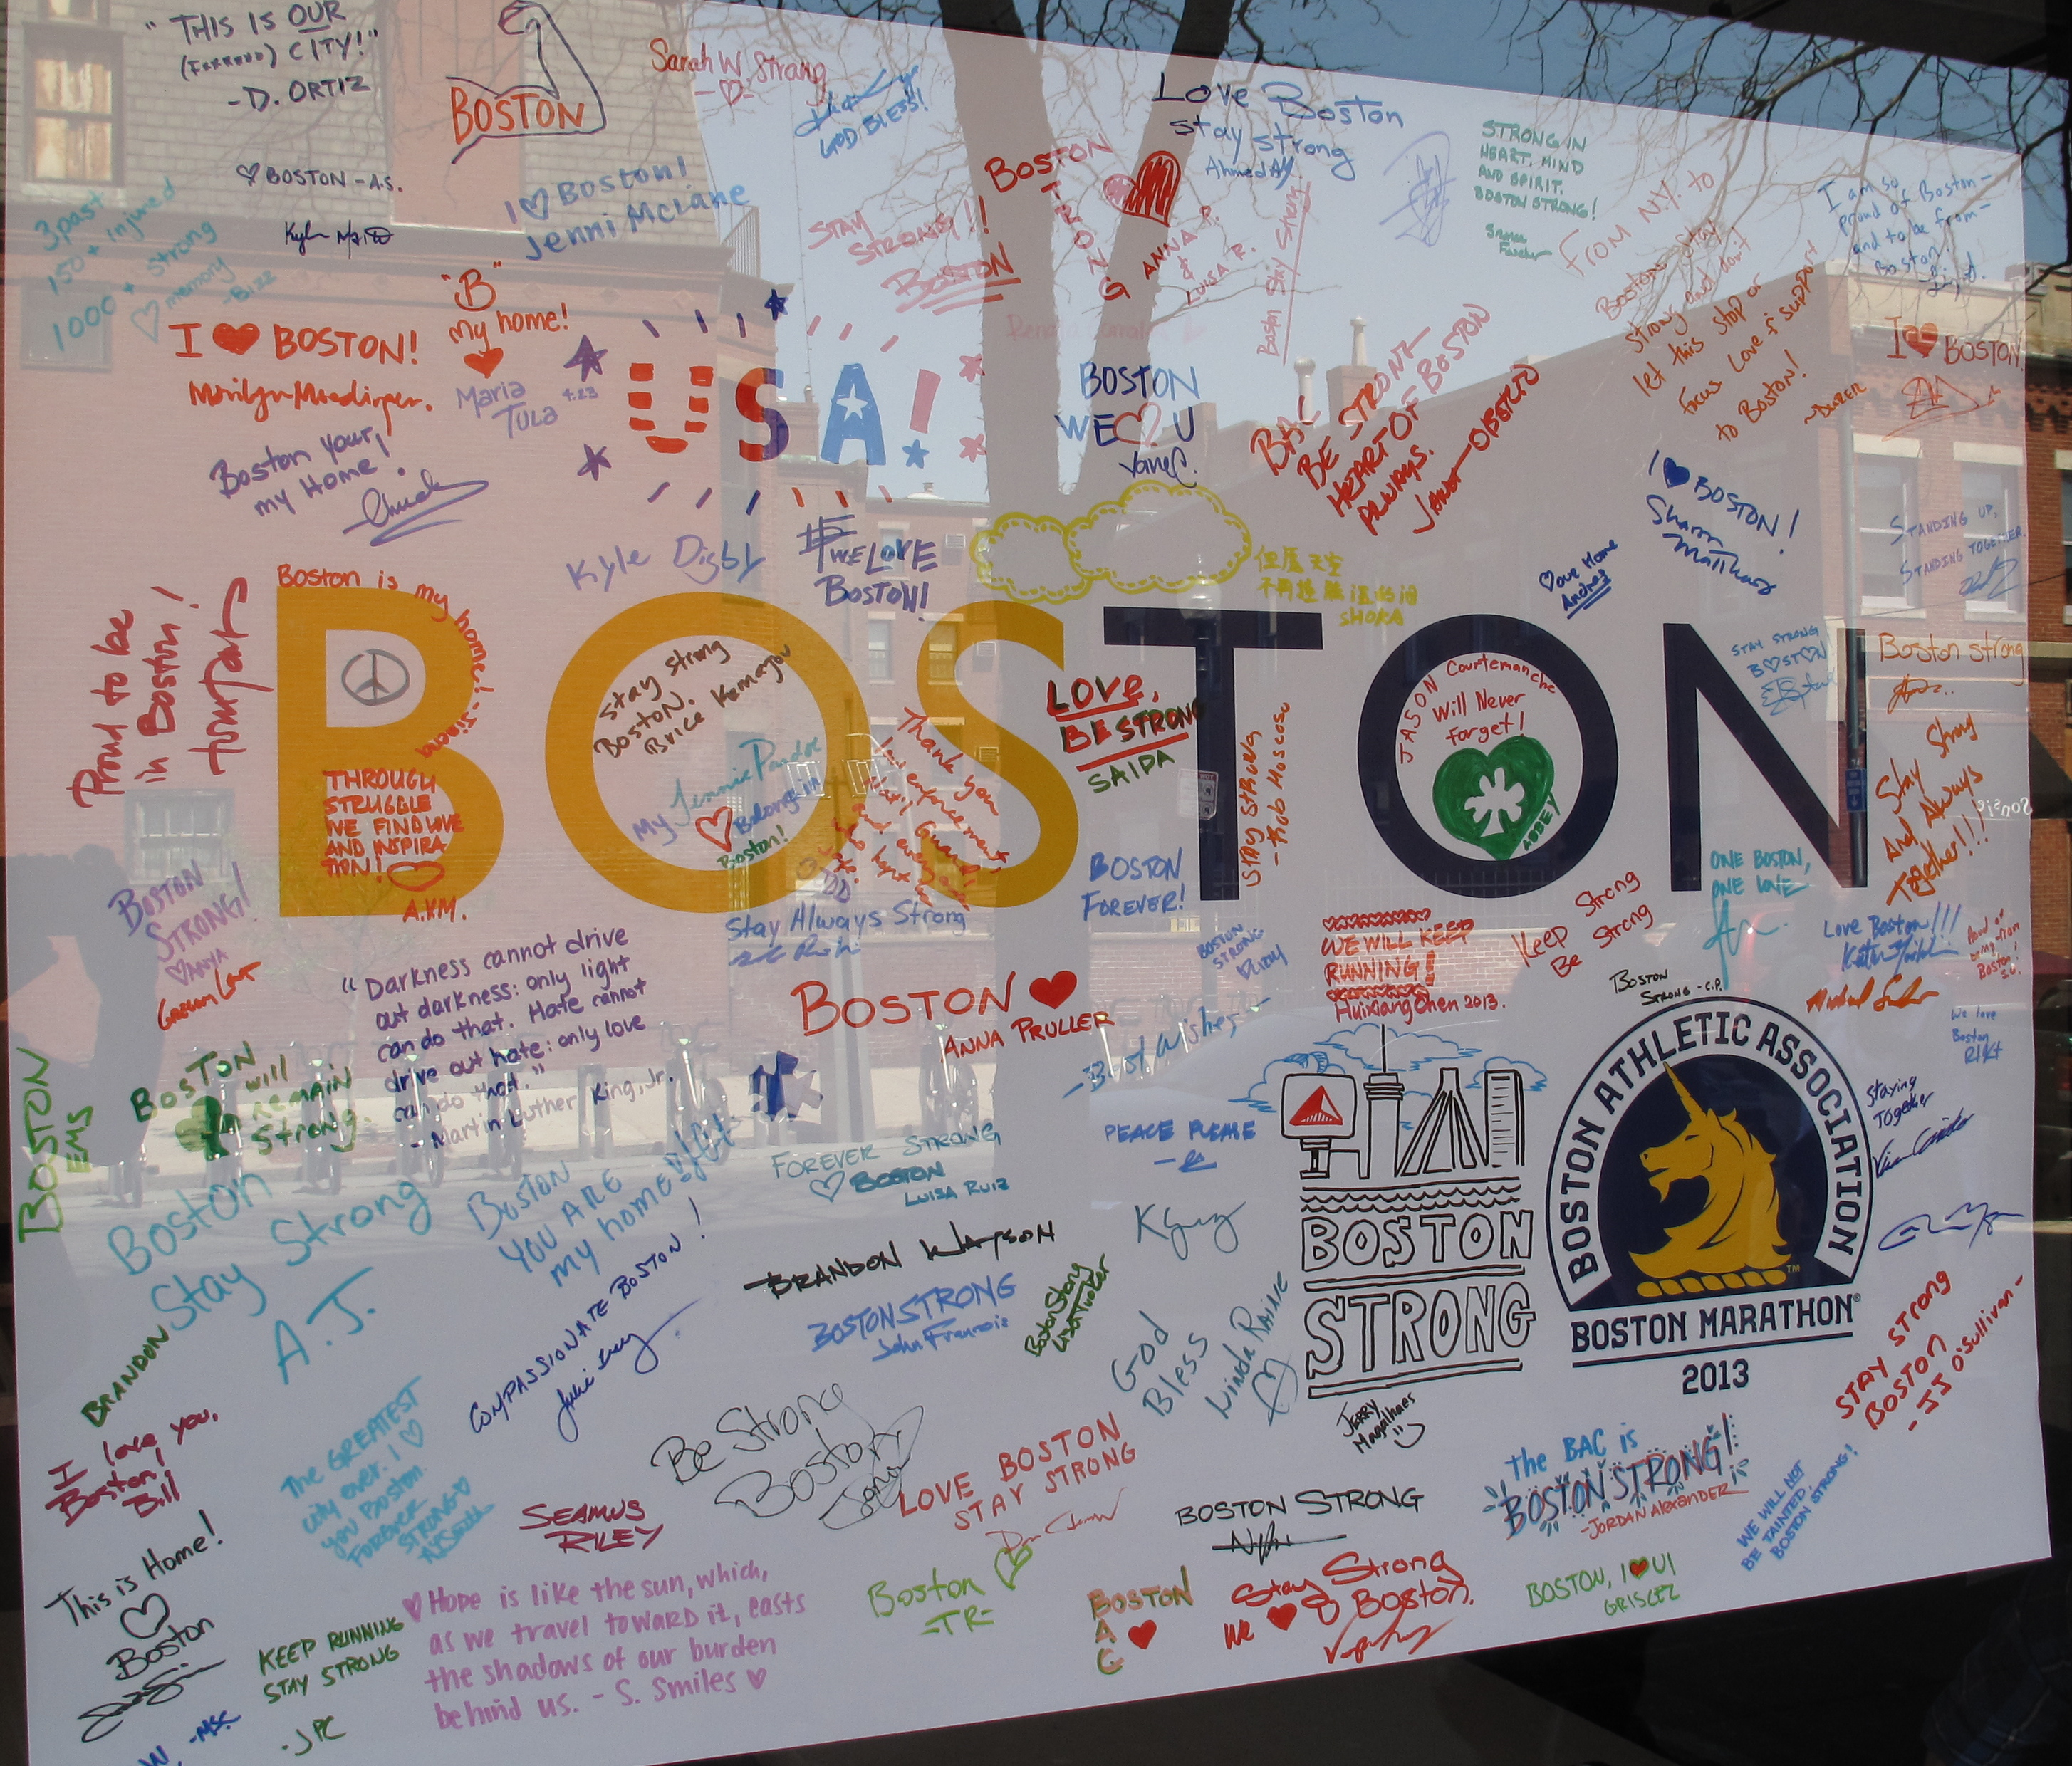 One Of The Many Posters And Signs Expressing Support For Boston After The  Bombings   This